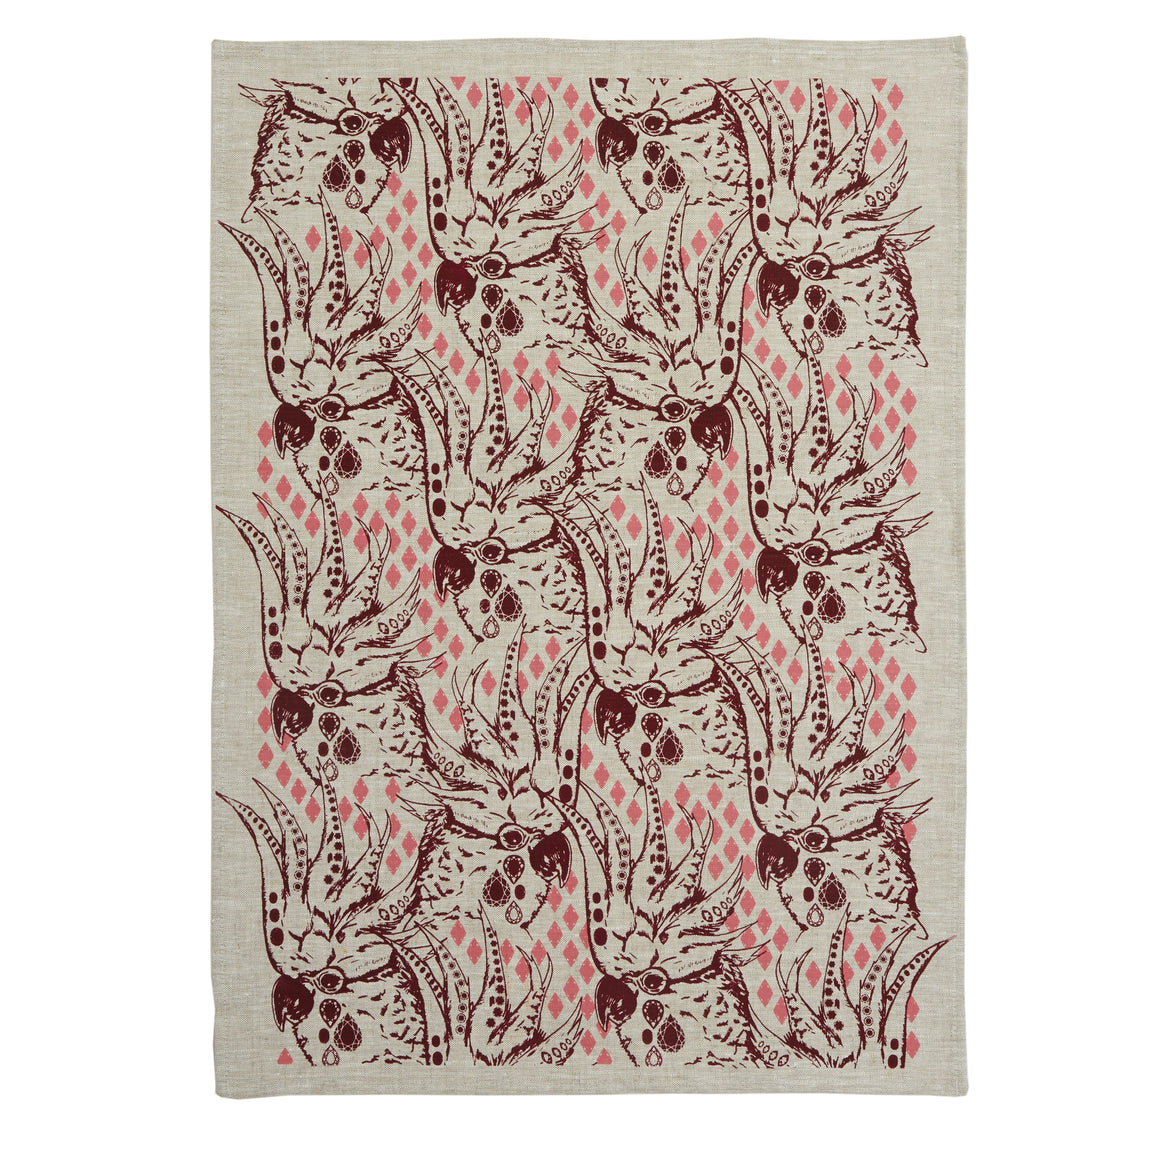 Cockatoo tea towel Burgundy